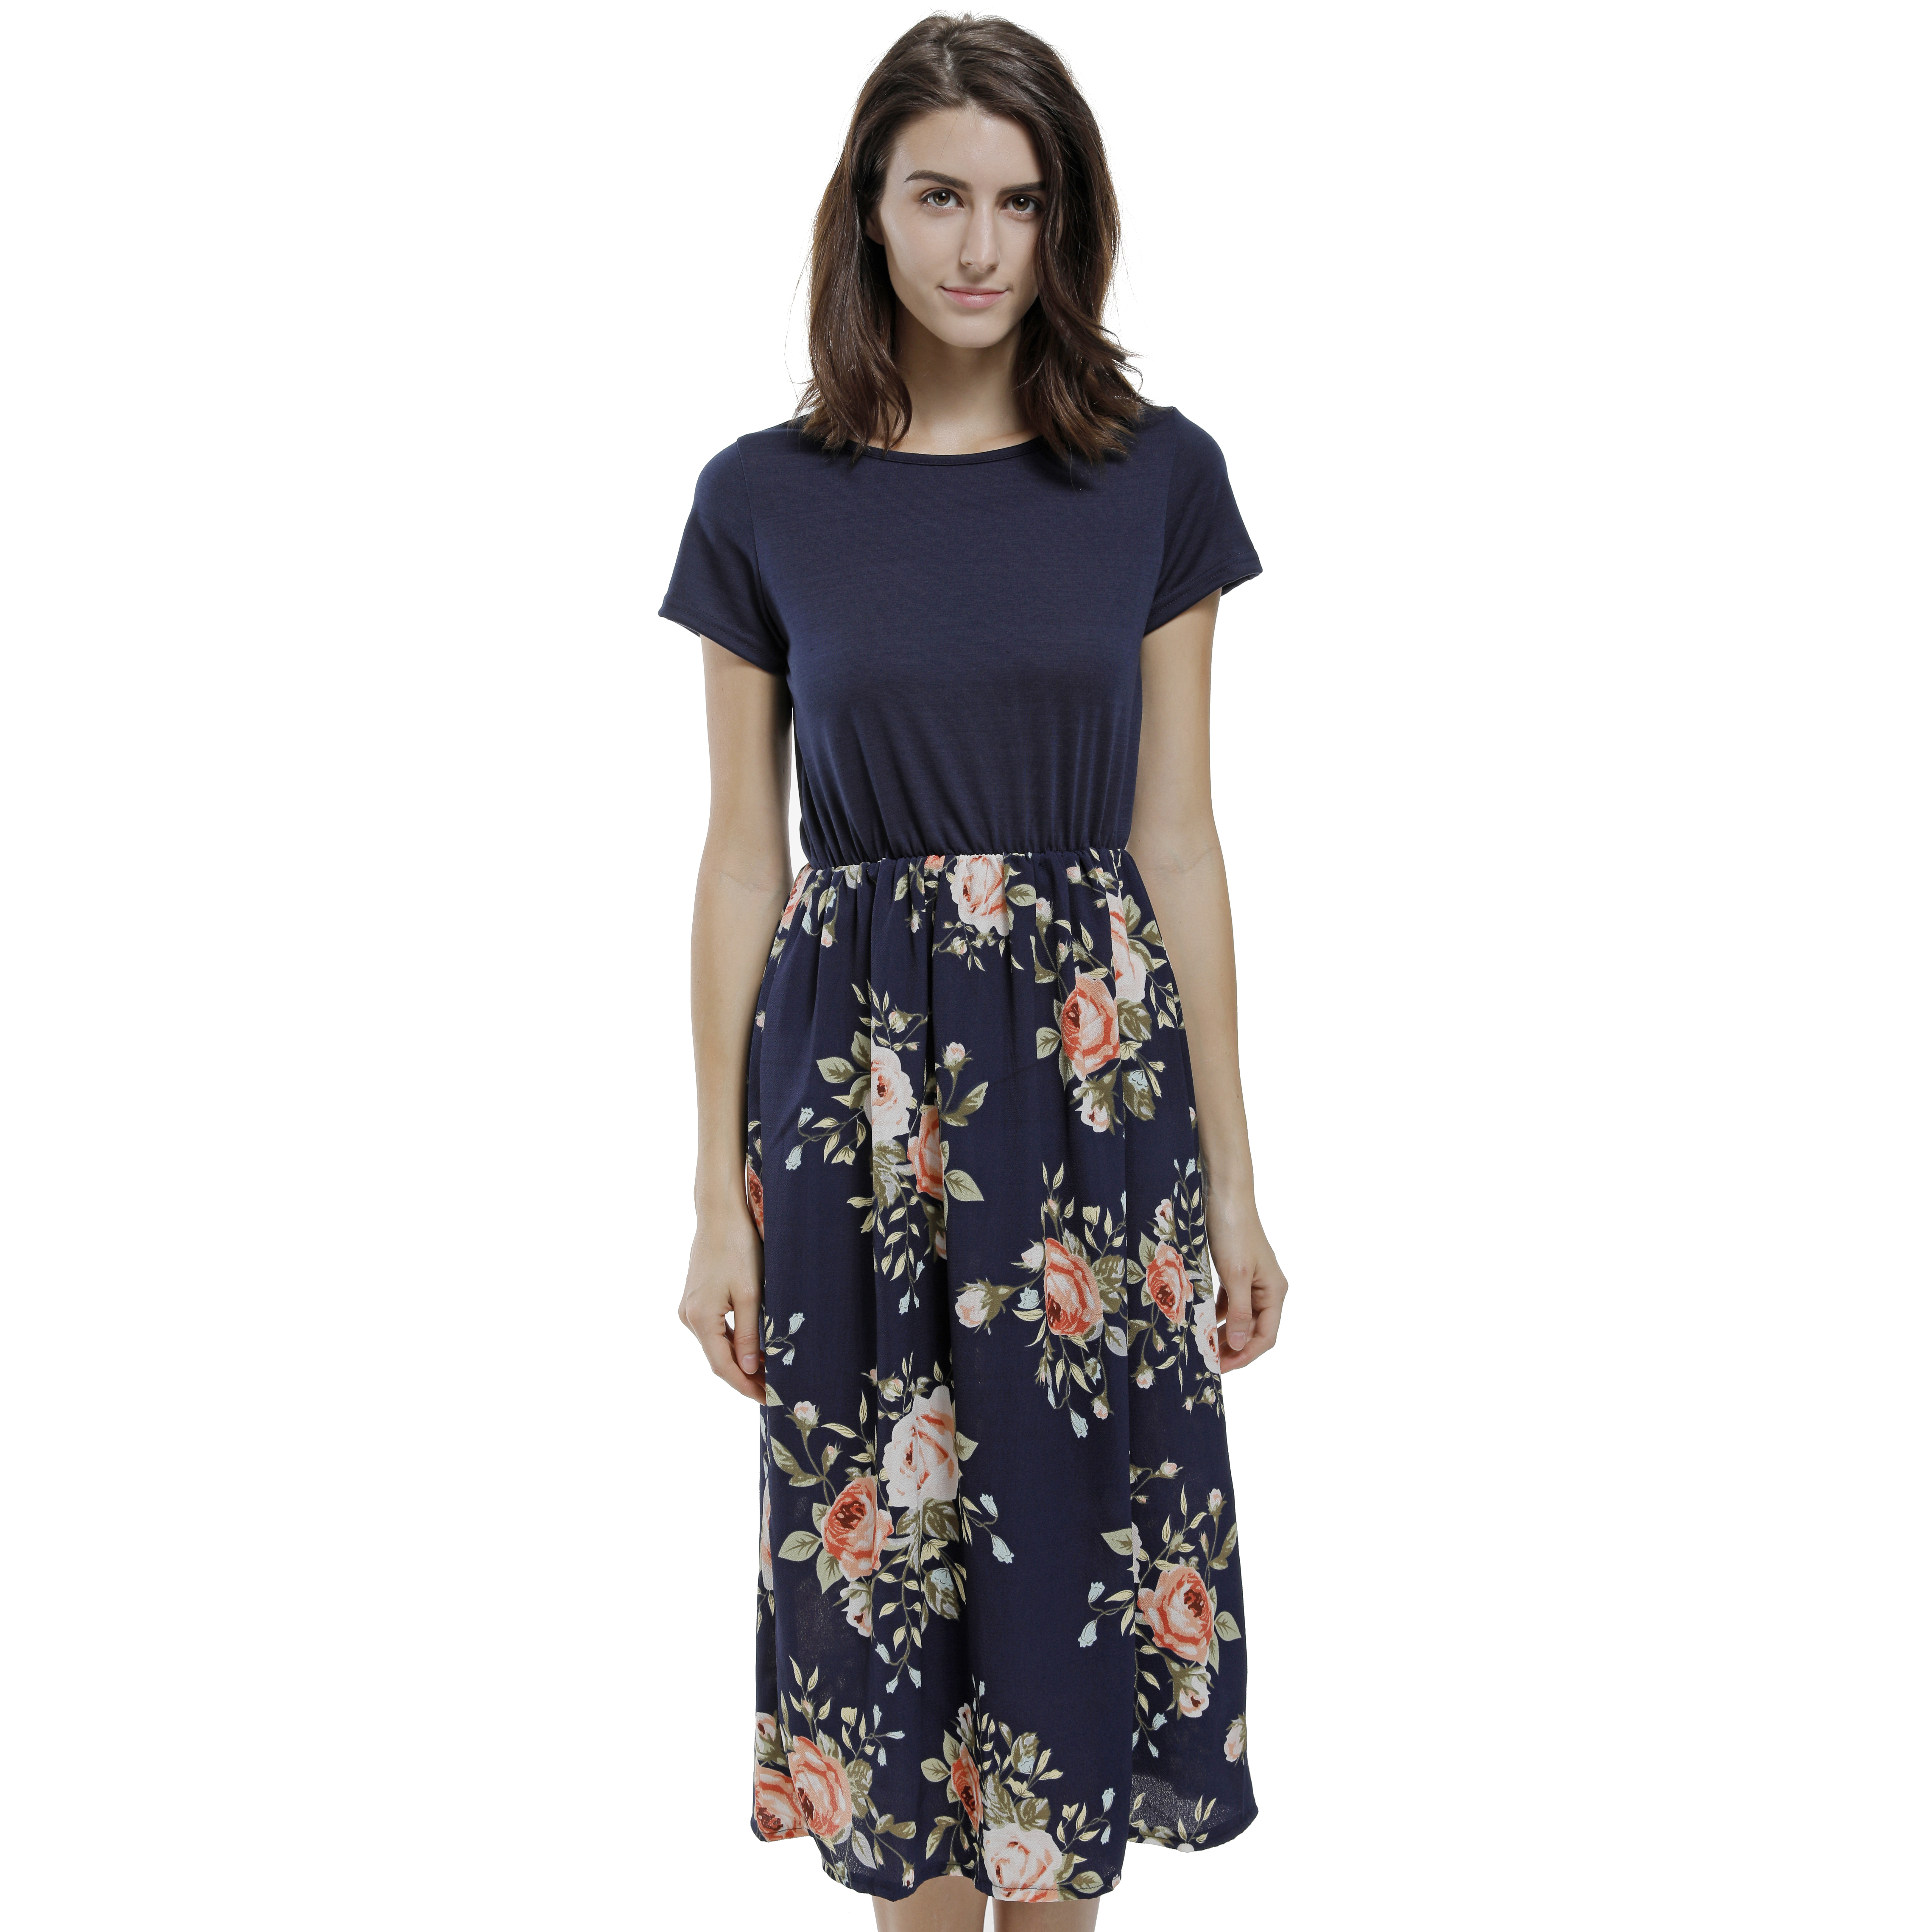 Women Casual Beach Party Club Dresses Short Sleeve Floral -8684